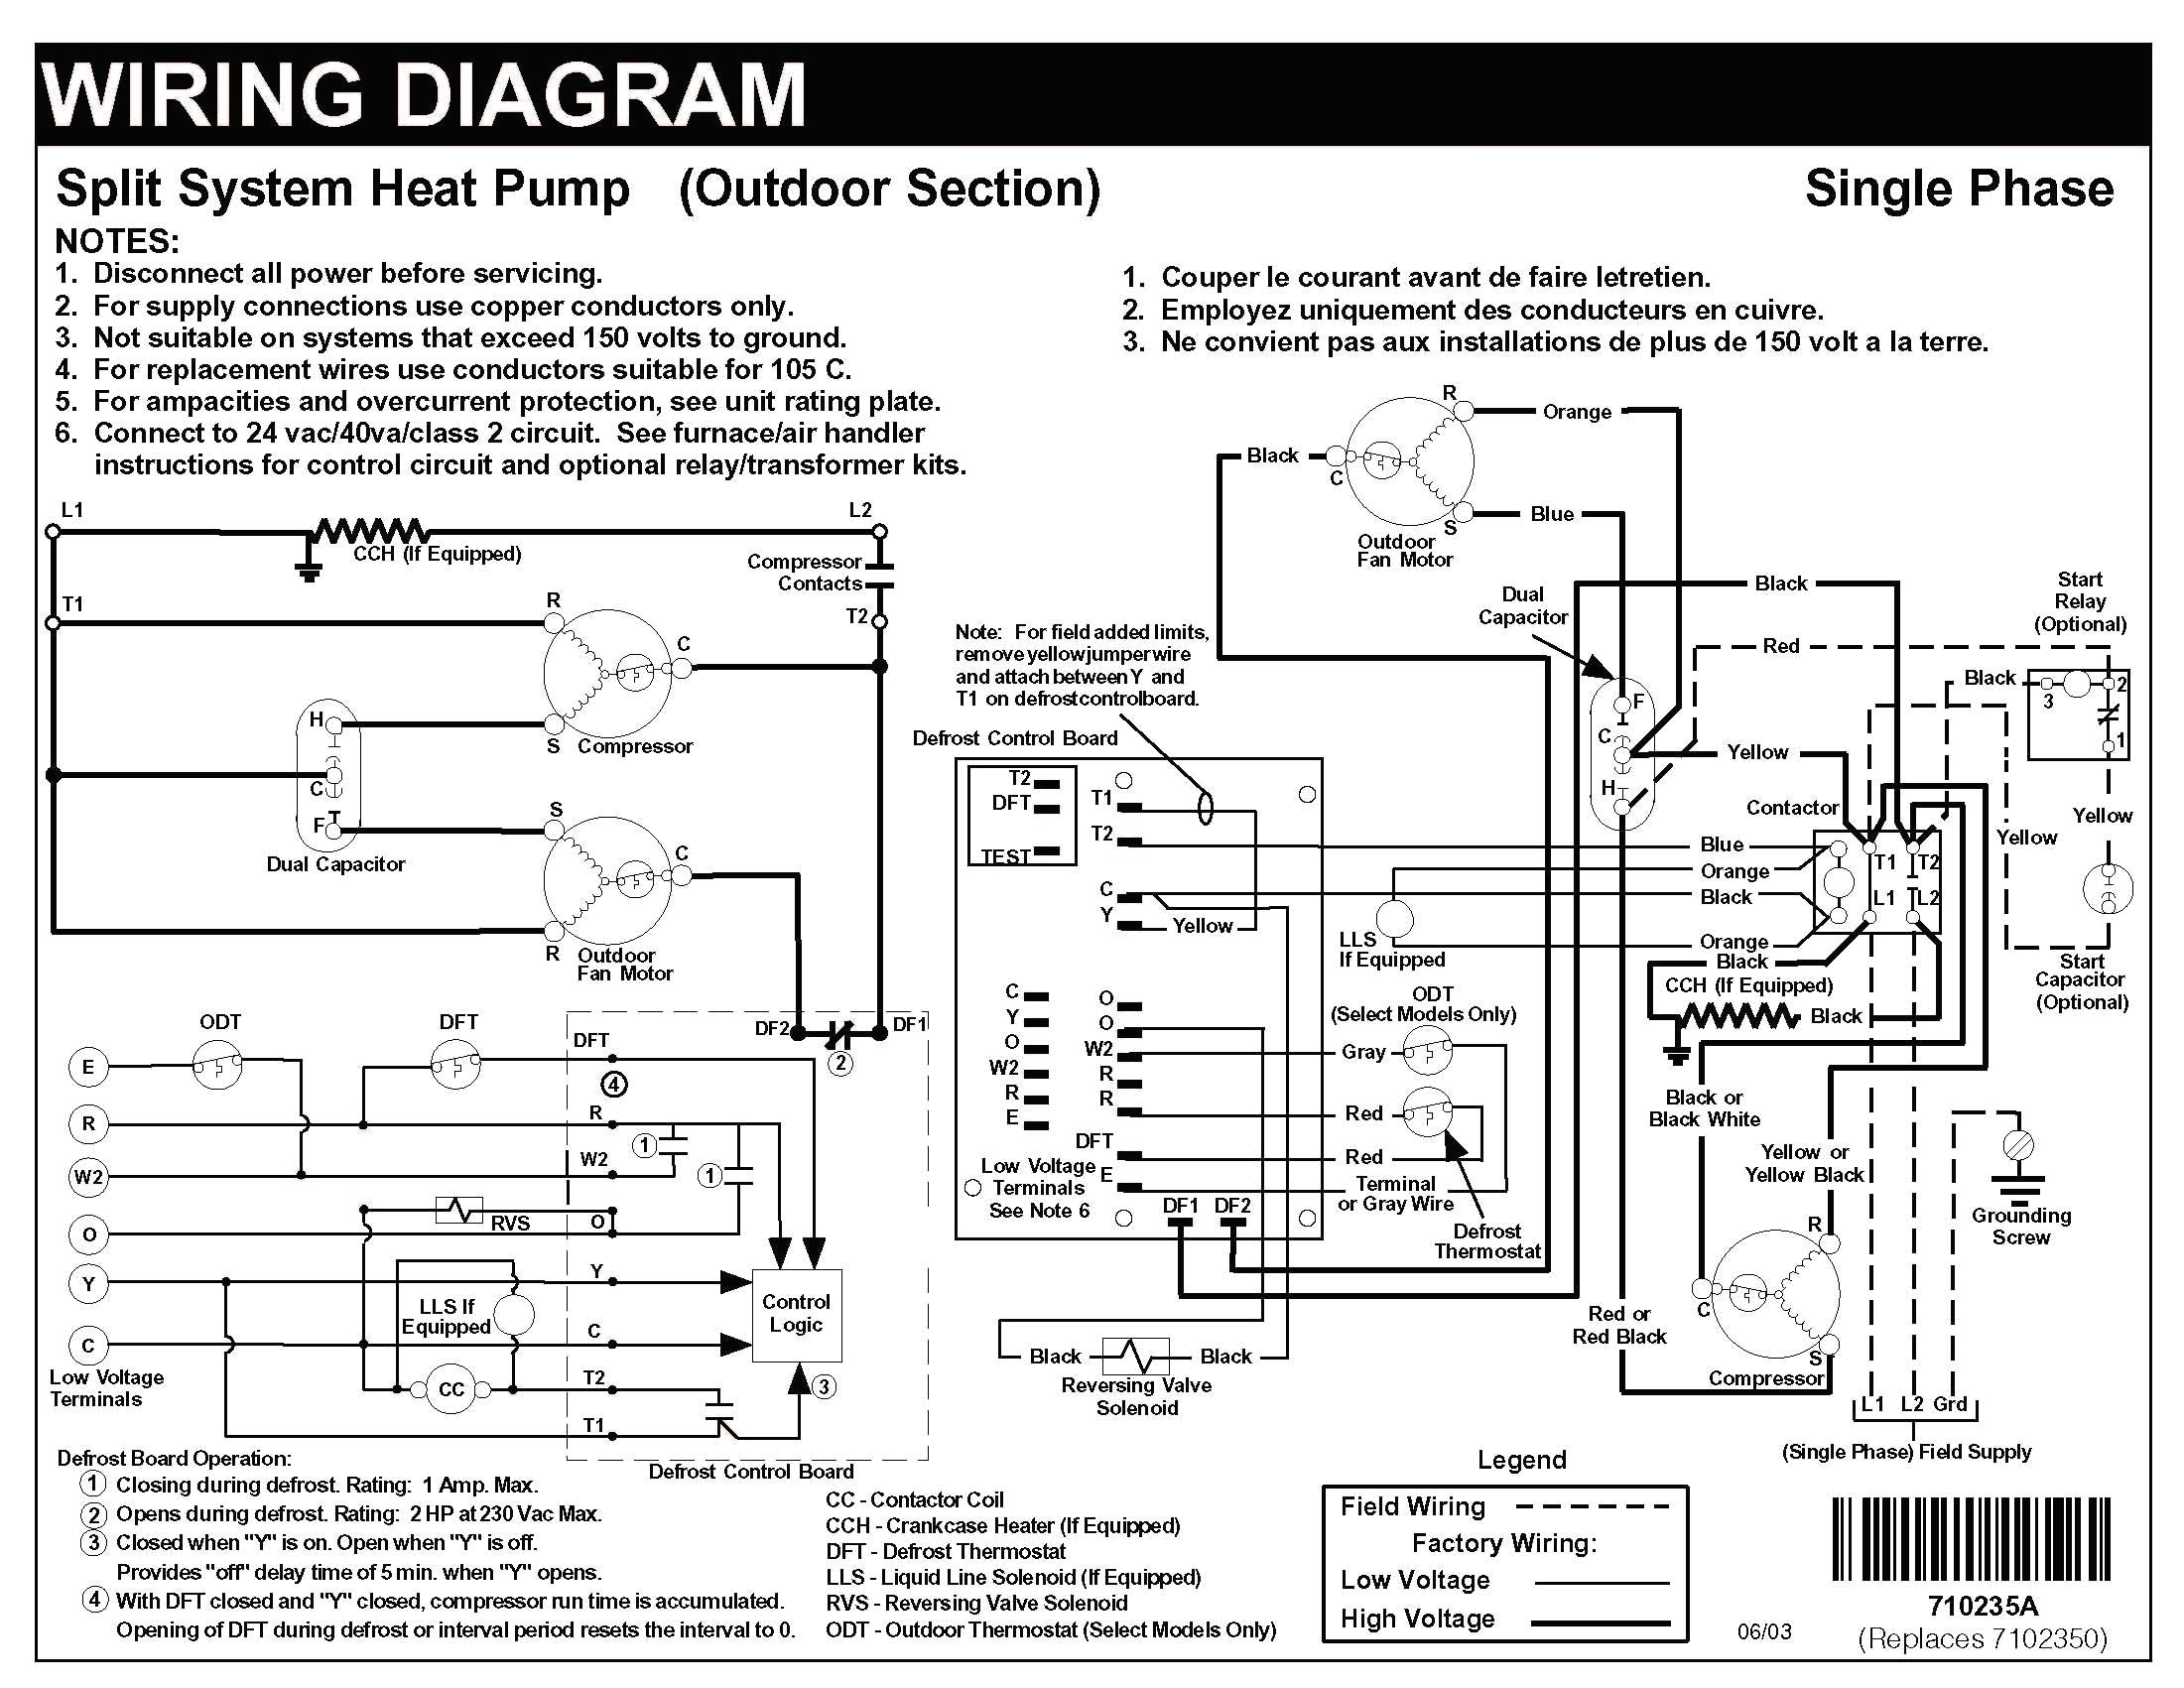 nest heat pump wiring diagram Collection-Wiring Diagram Hvac thermostat Fresh Nest thermostat Wiring Diagram Heat Pump Elegant Famous Carrier Heat 8-k